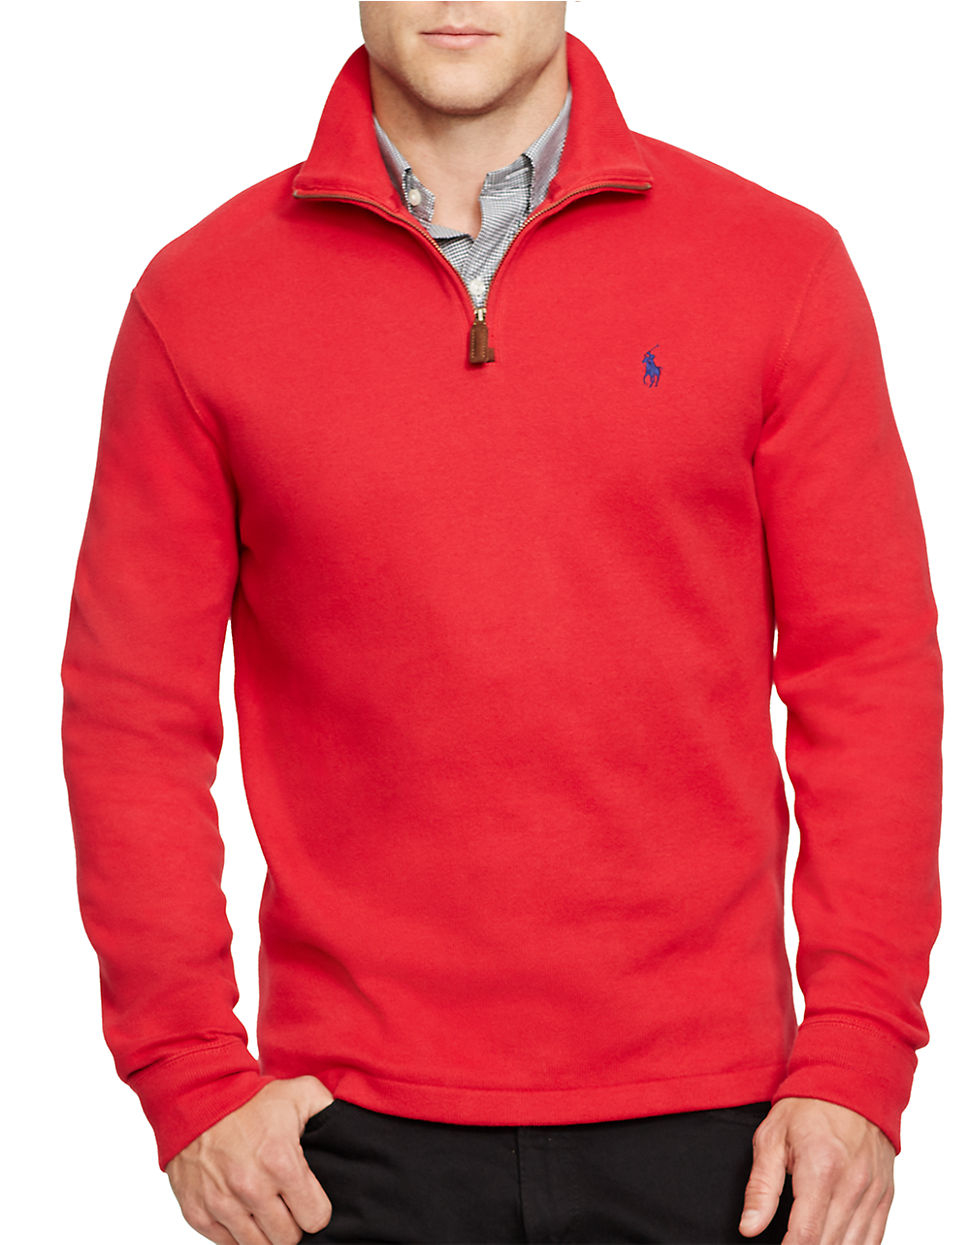 polo ralph lauren french rib half zip pullover in red for. Black Bedroom Furniture Sets. Home Design Ideas